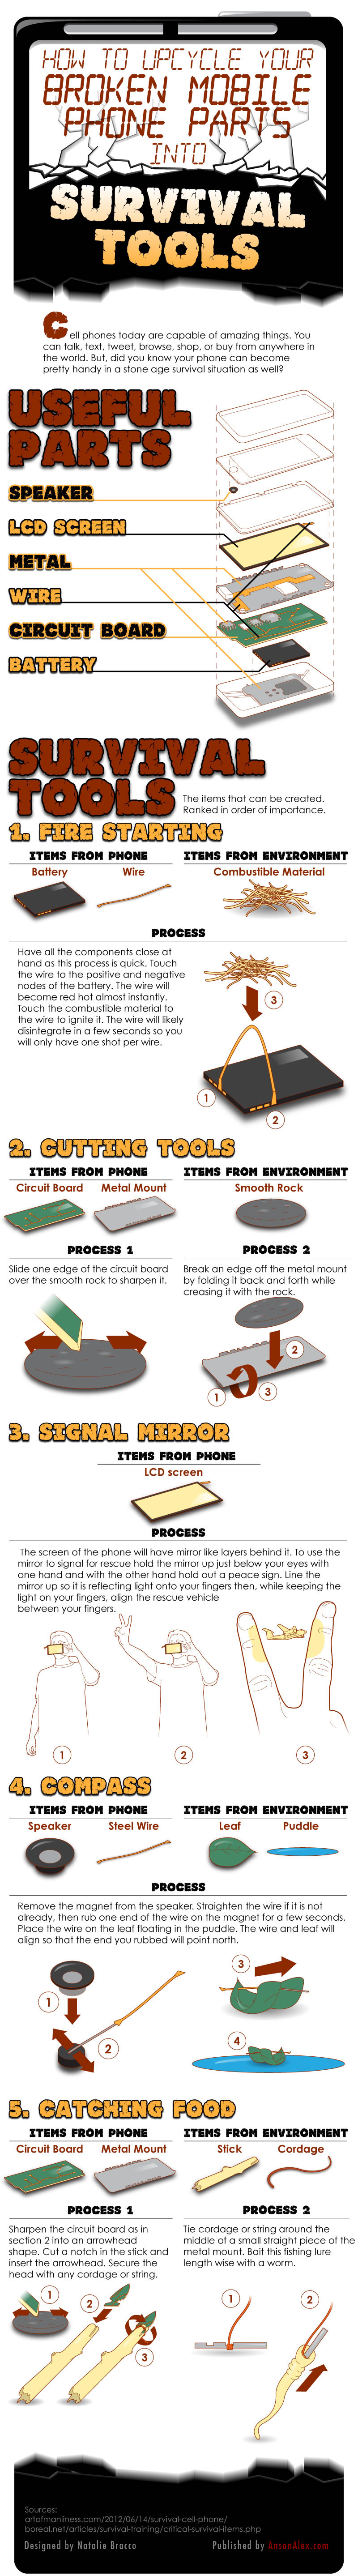 how to use parts of a broken cell phone as survival tools mobile parts phone parts diagram [ 800 x 5755 Pixel ]